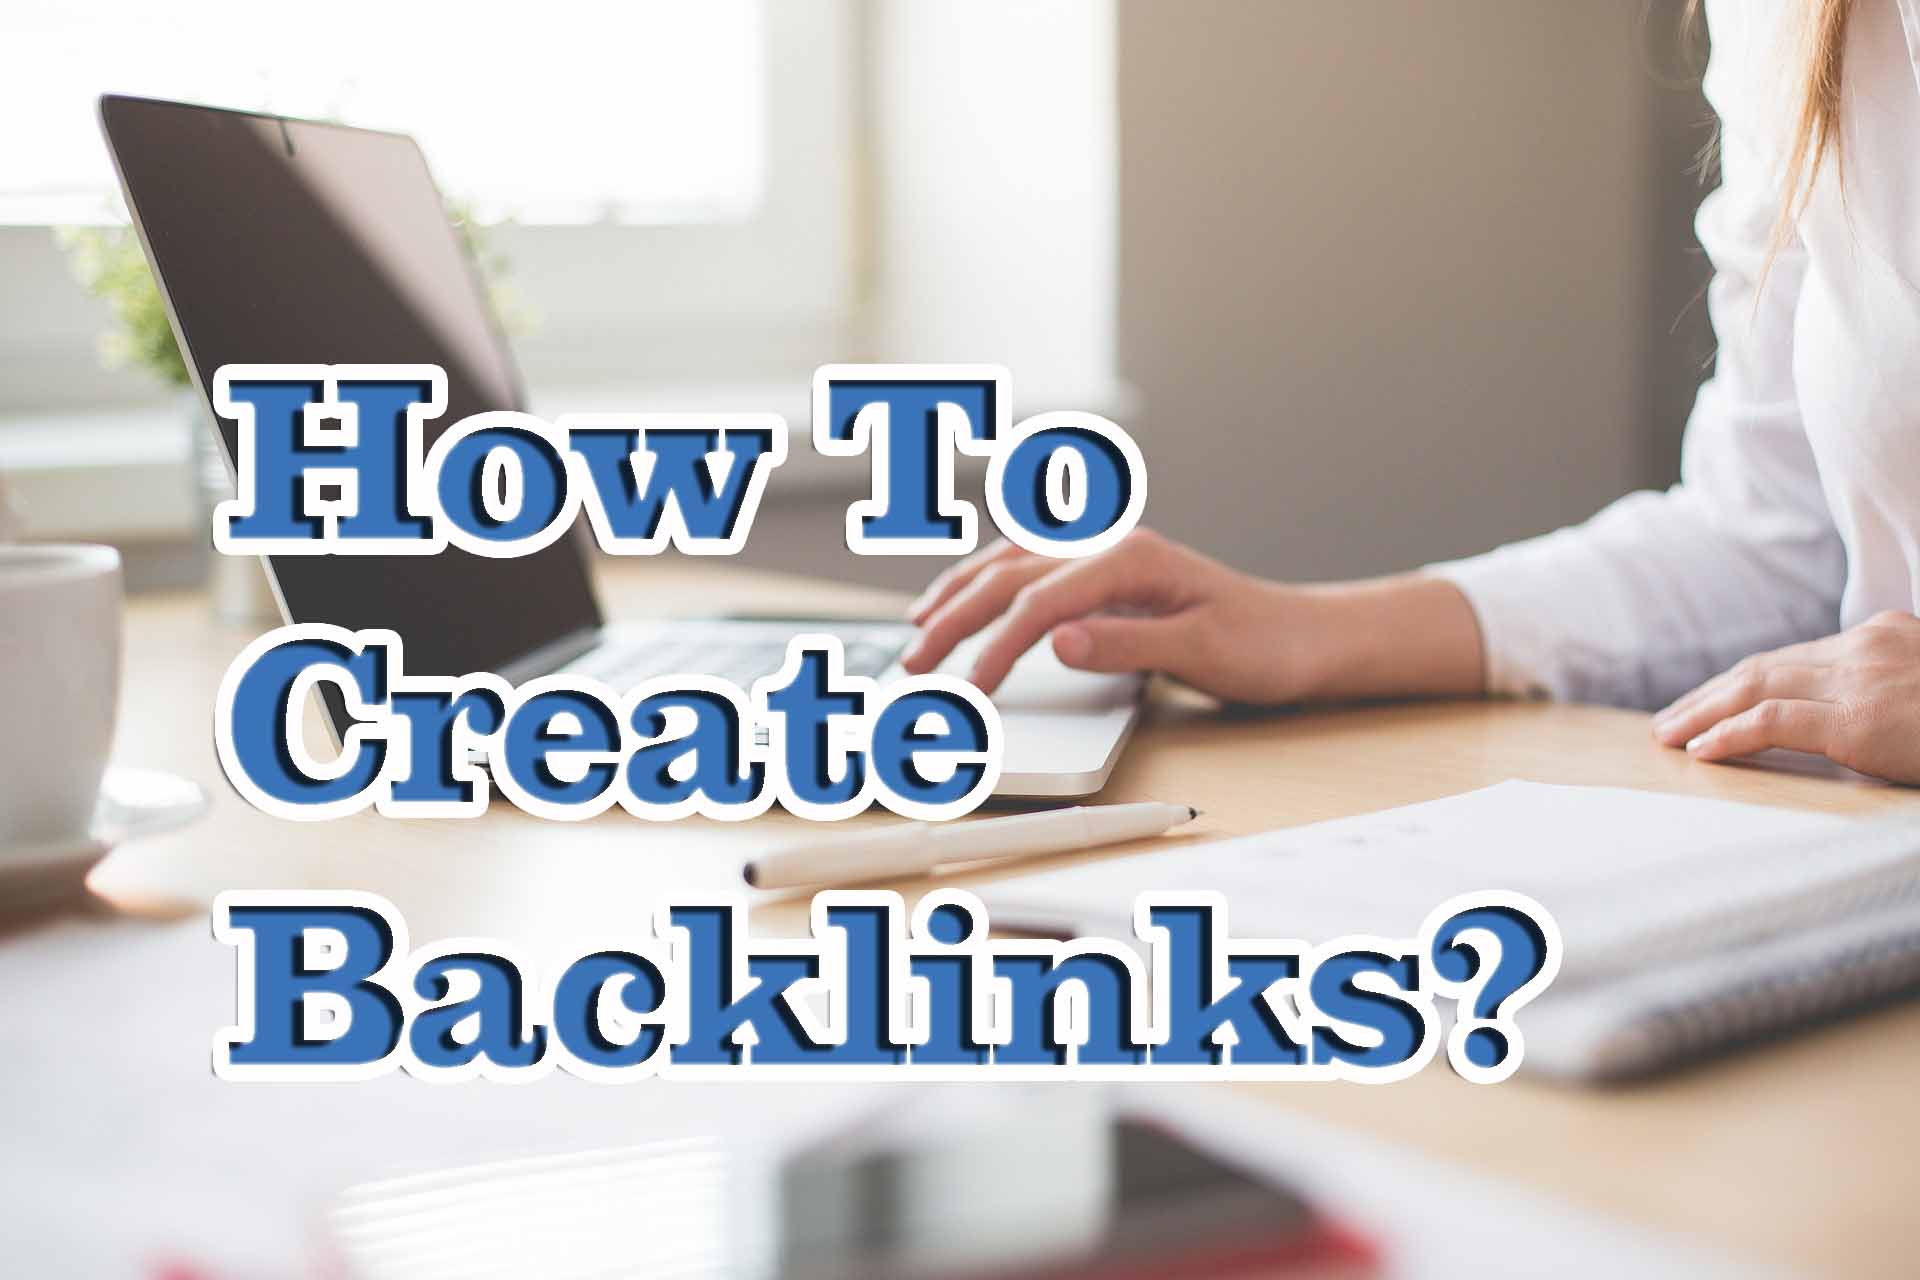 Do You Know How to Create Backlinks?